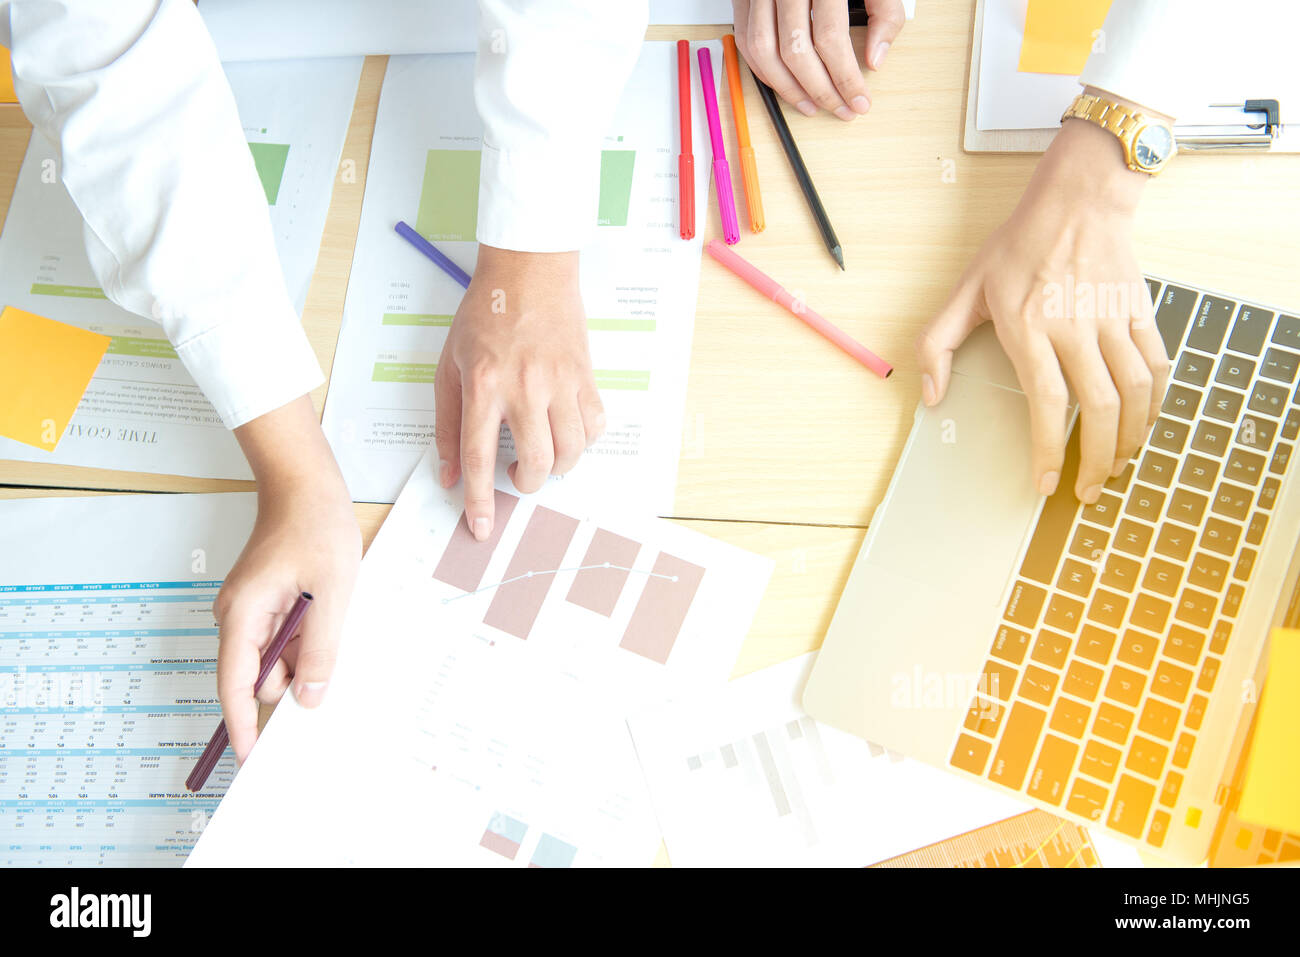 business group working check chart and paper data with laptop on desk in office - Stock Image